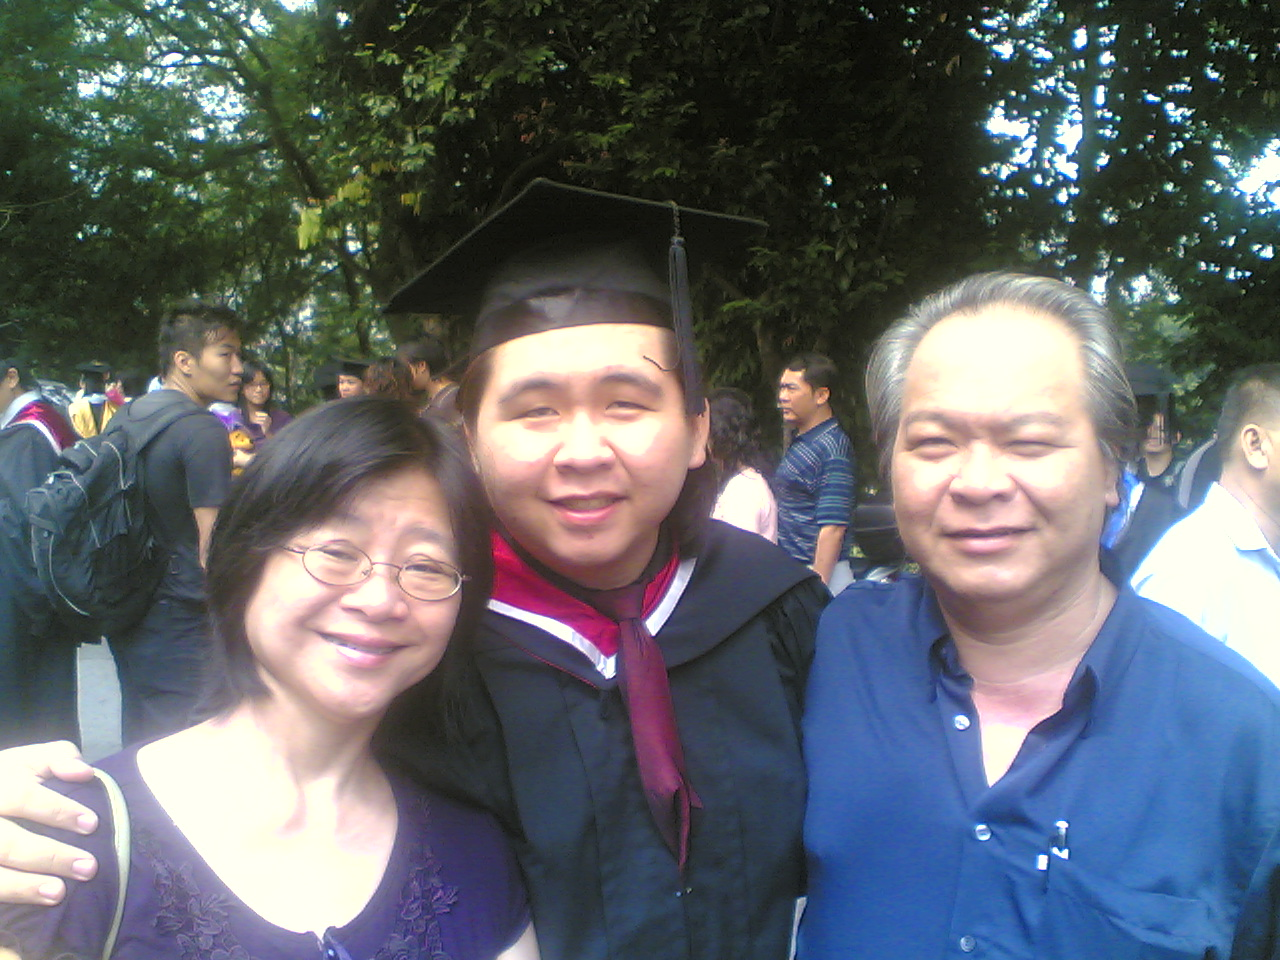 Mum, Dad, and I...